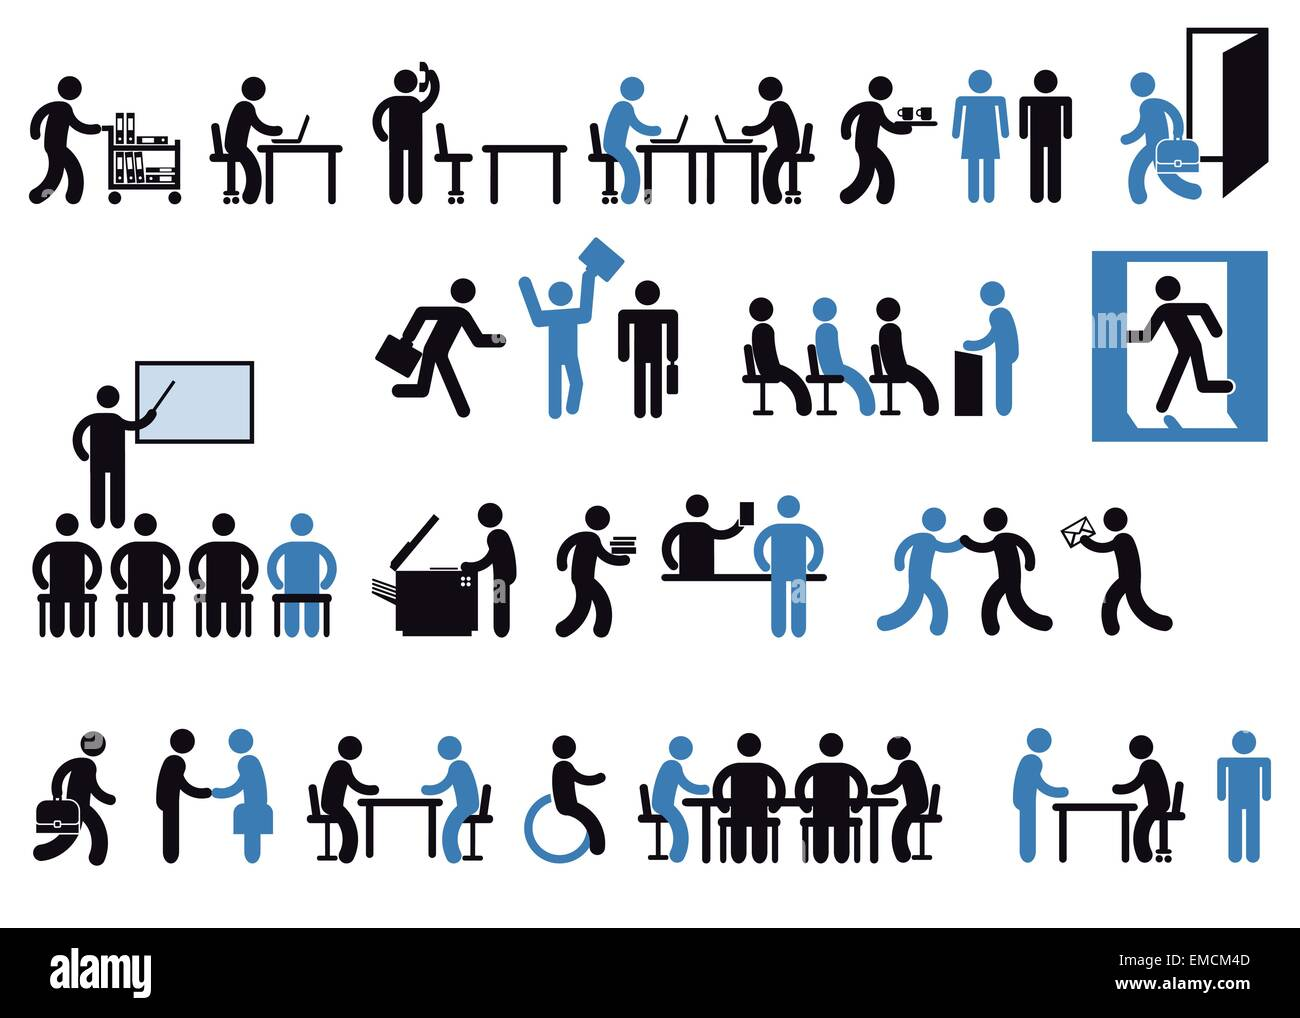 office pictogram - Stock Image